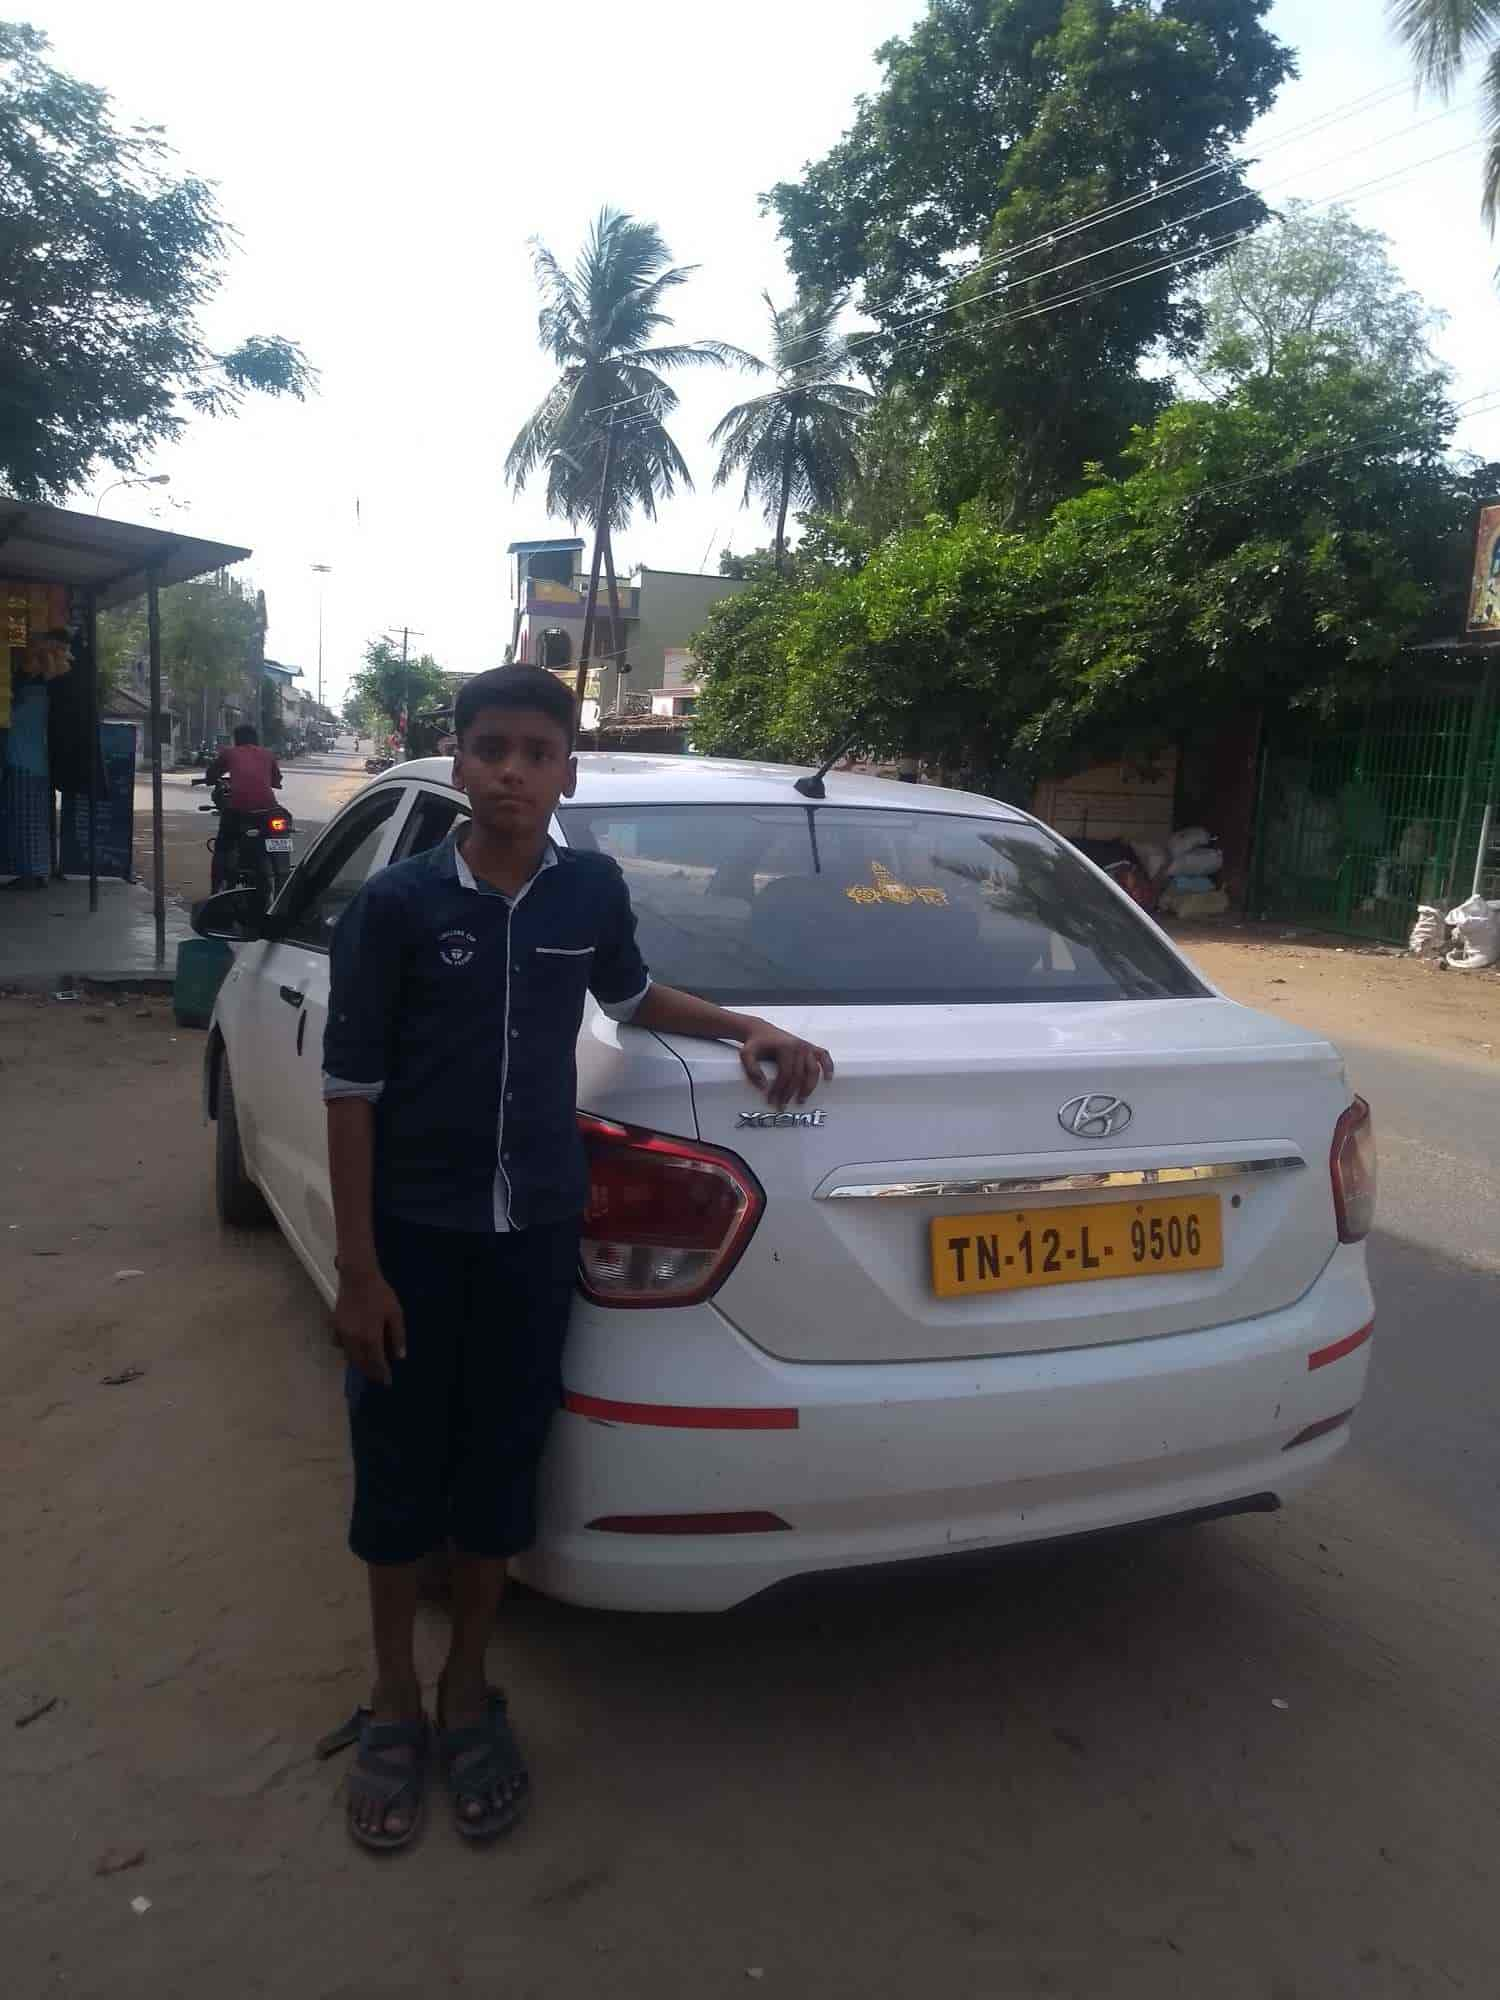 Drop Taxi Service Arumbakkam Taxi Services In Chennai Justdial